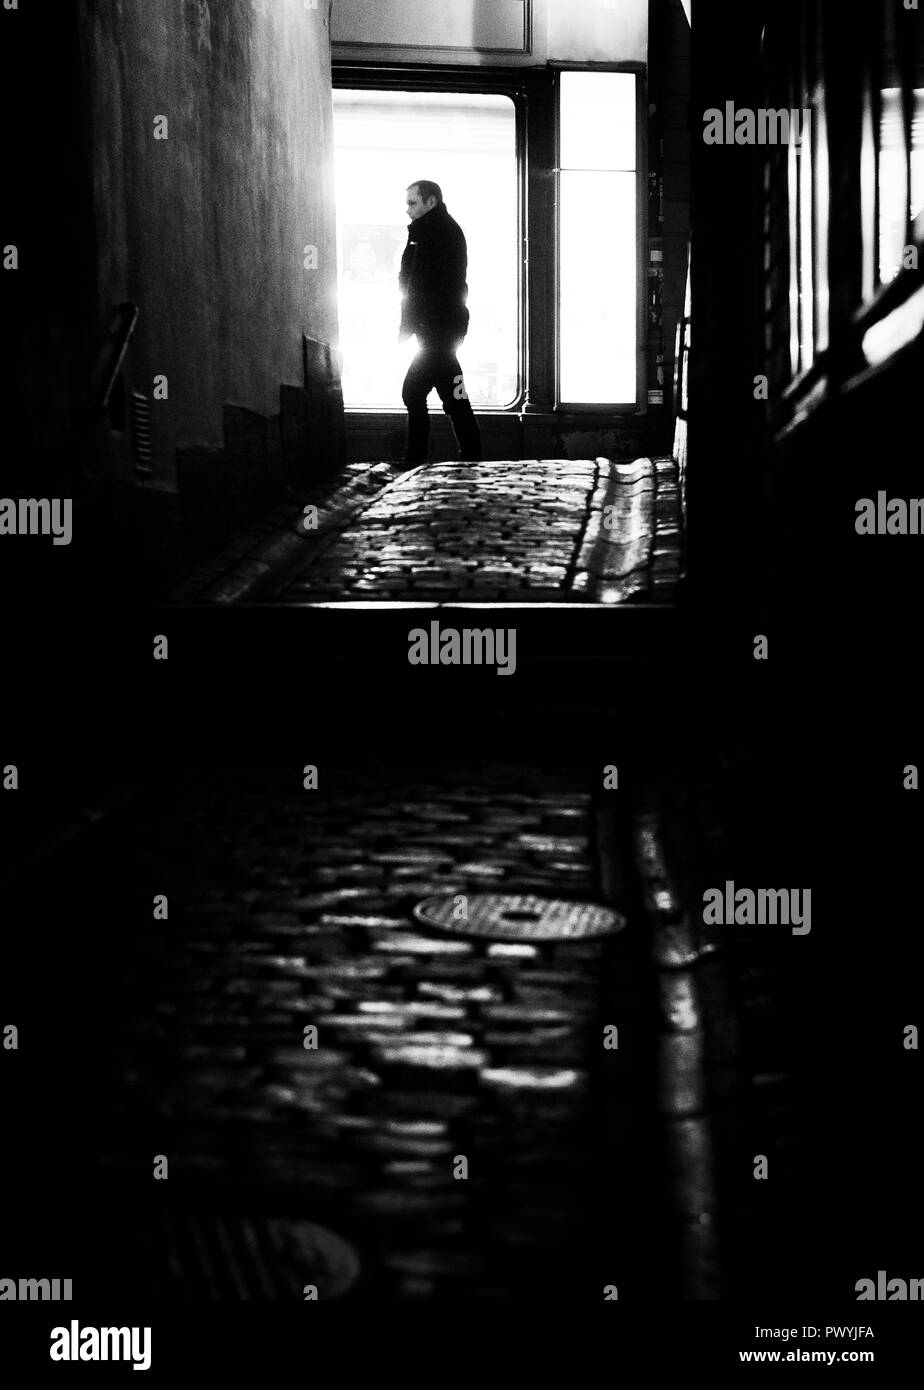 Silhouette of a man walking in an alley at night, Stockholm Sweden - Stock Image